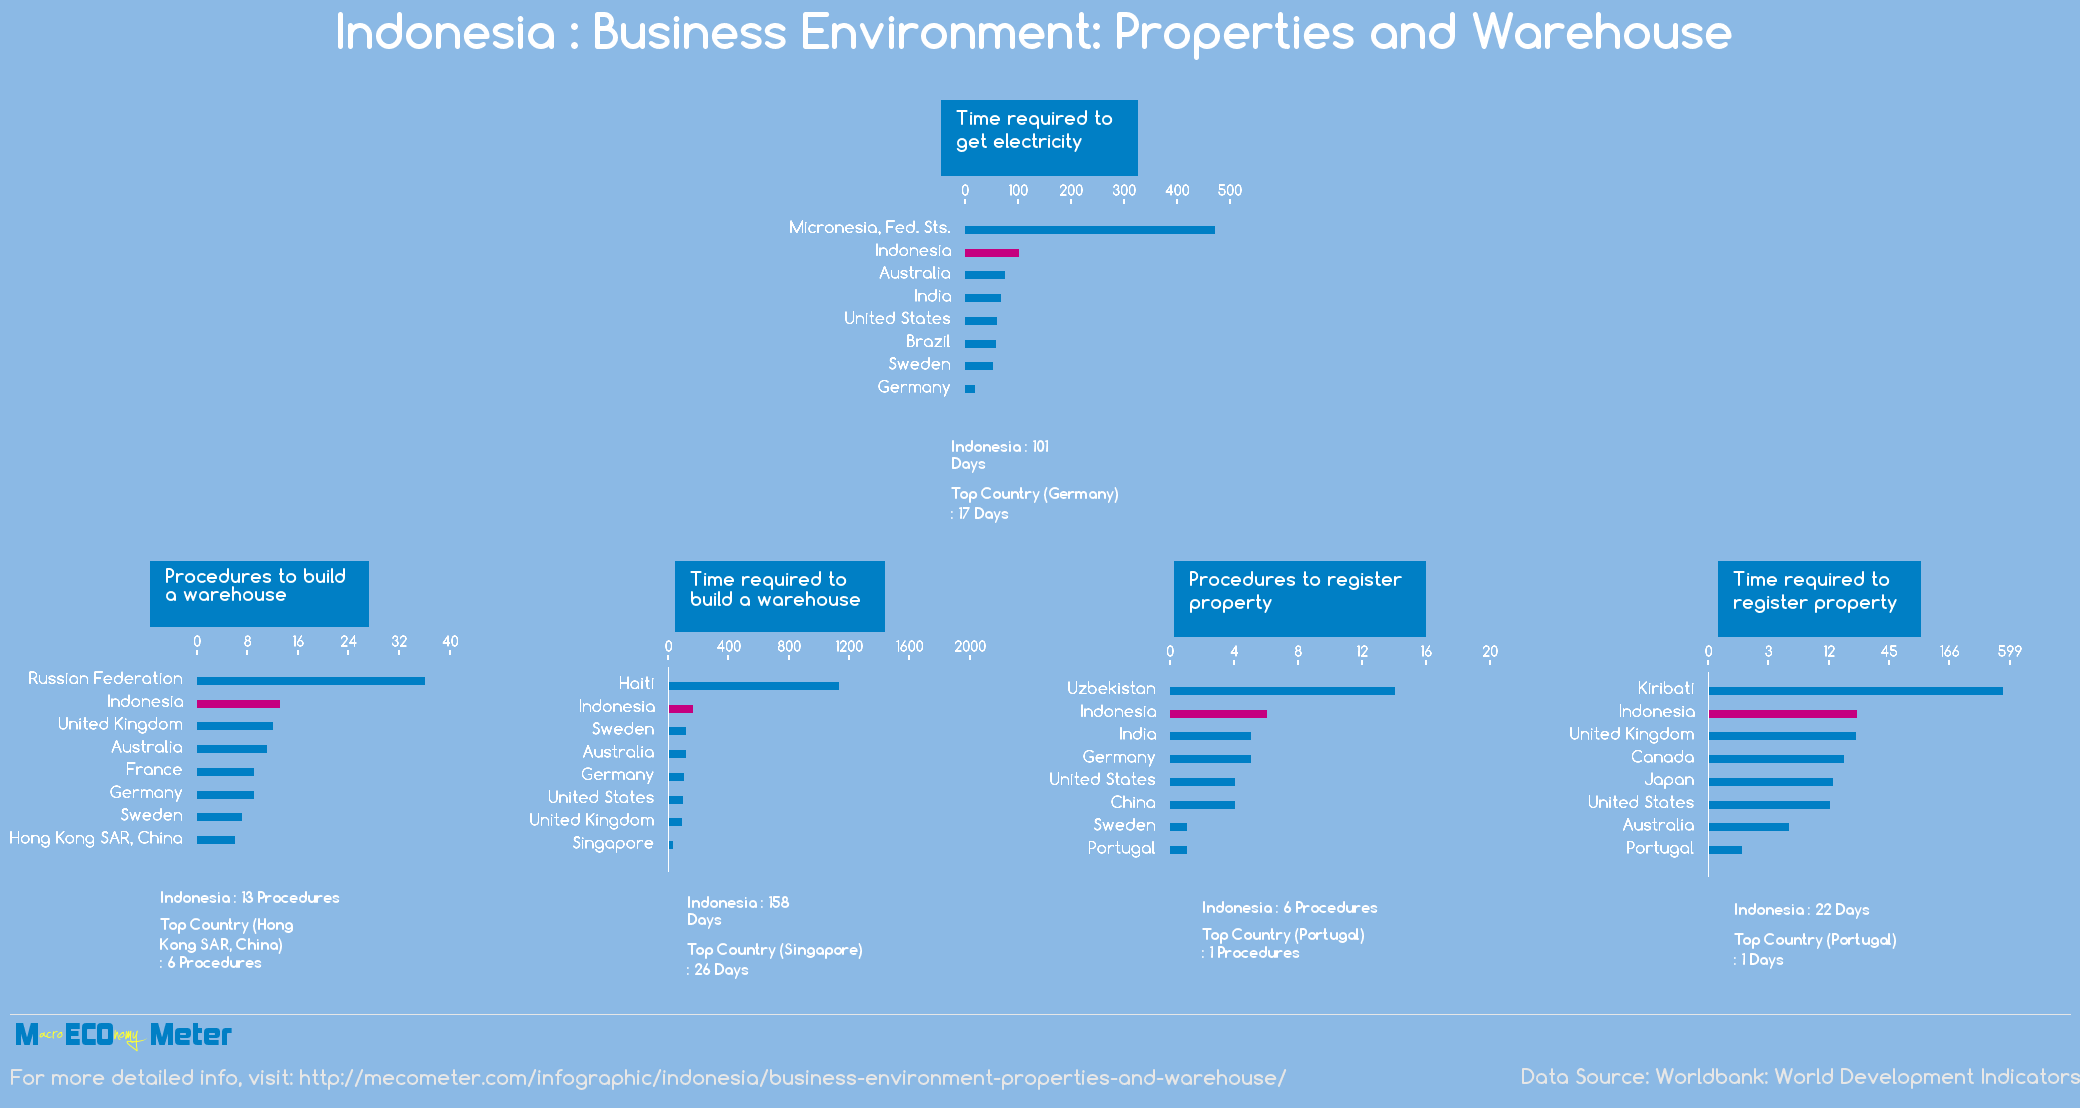 Indonesia : Business Environment: Properties and Warehouse